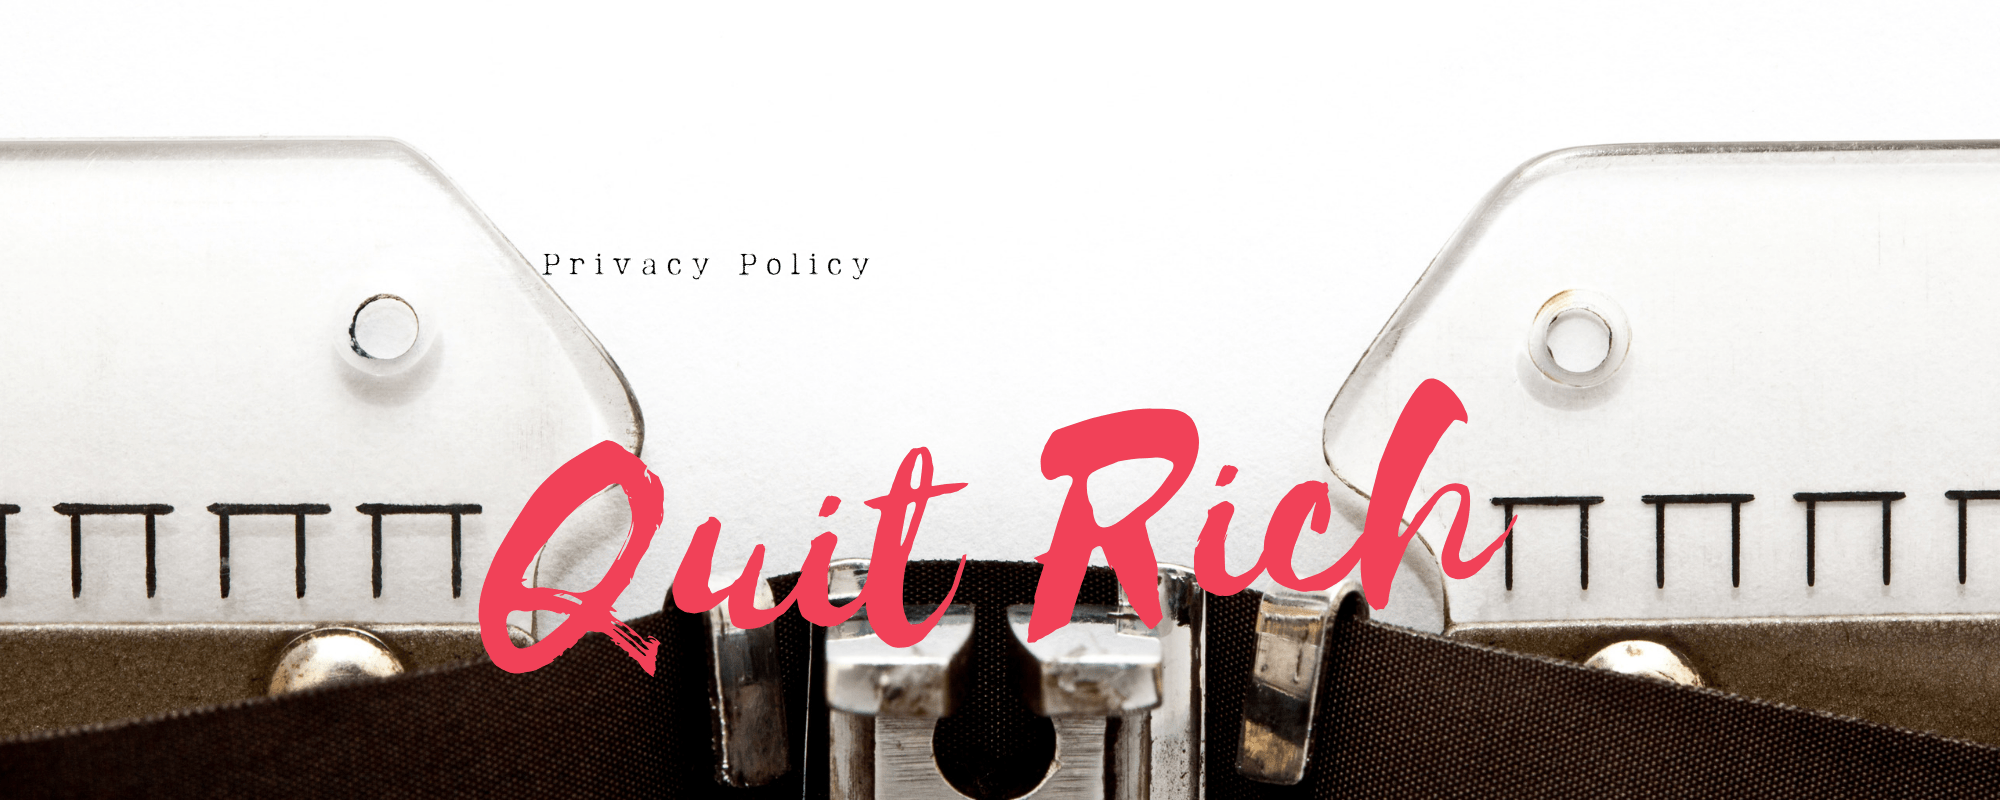 Quit Rich Privacy Policy